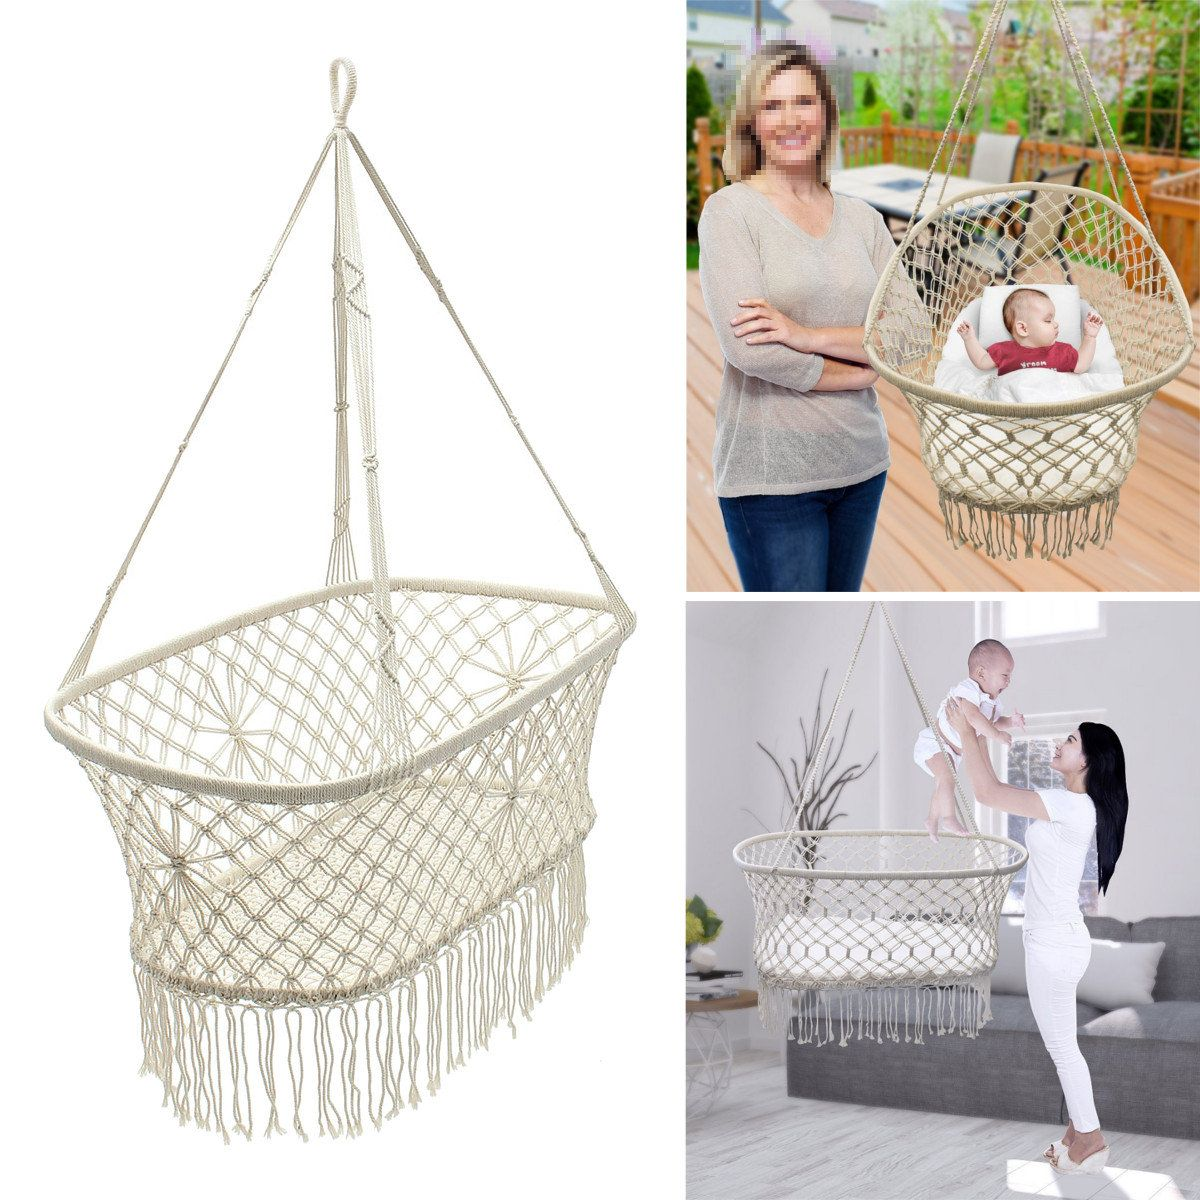 Baby garden hanging hammock cotton woven rope swing patio chair seat